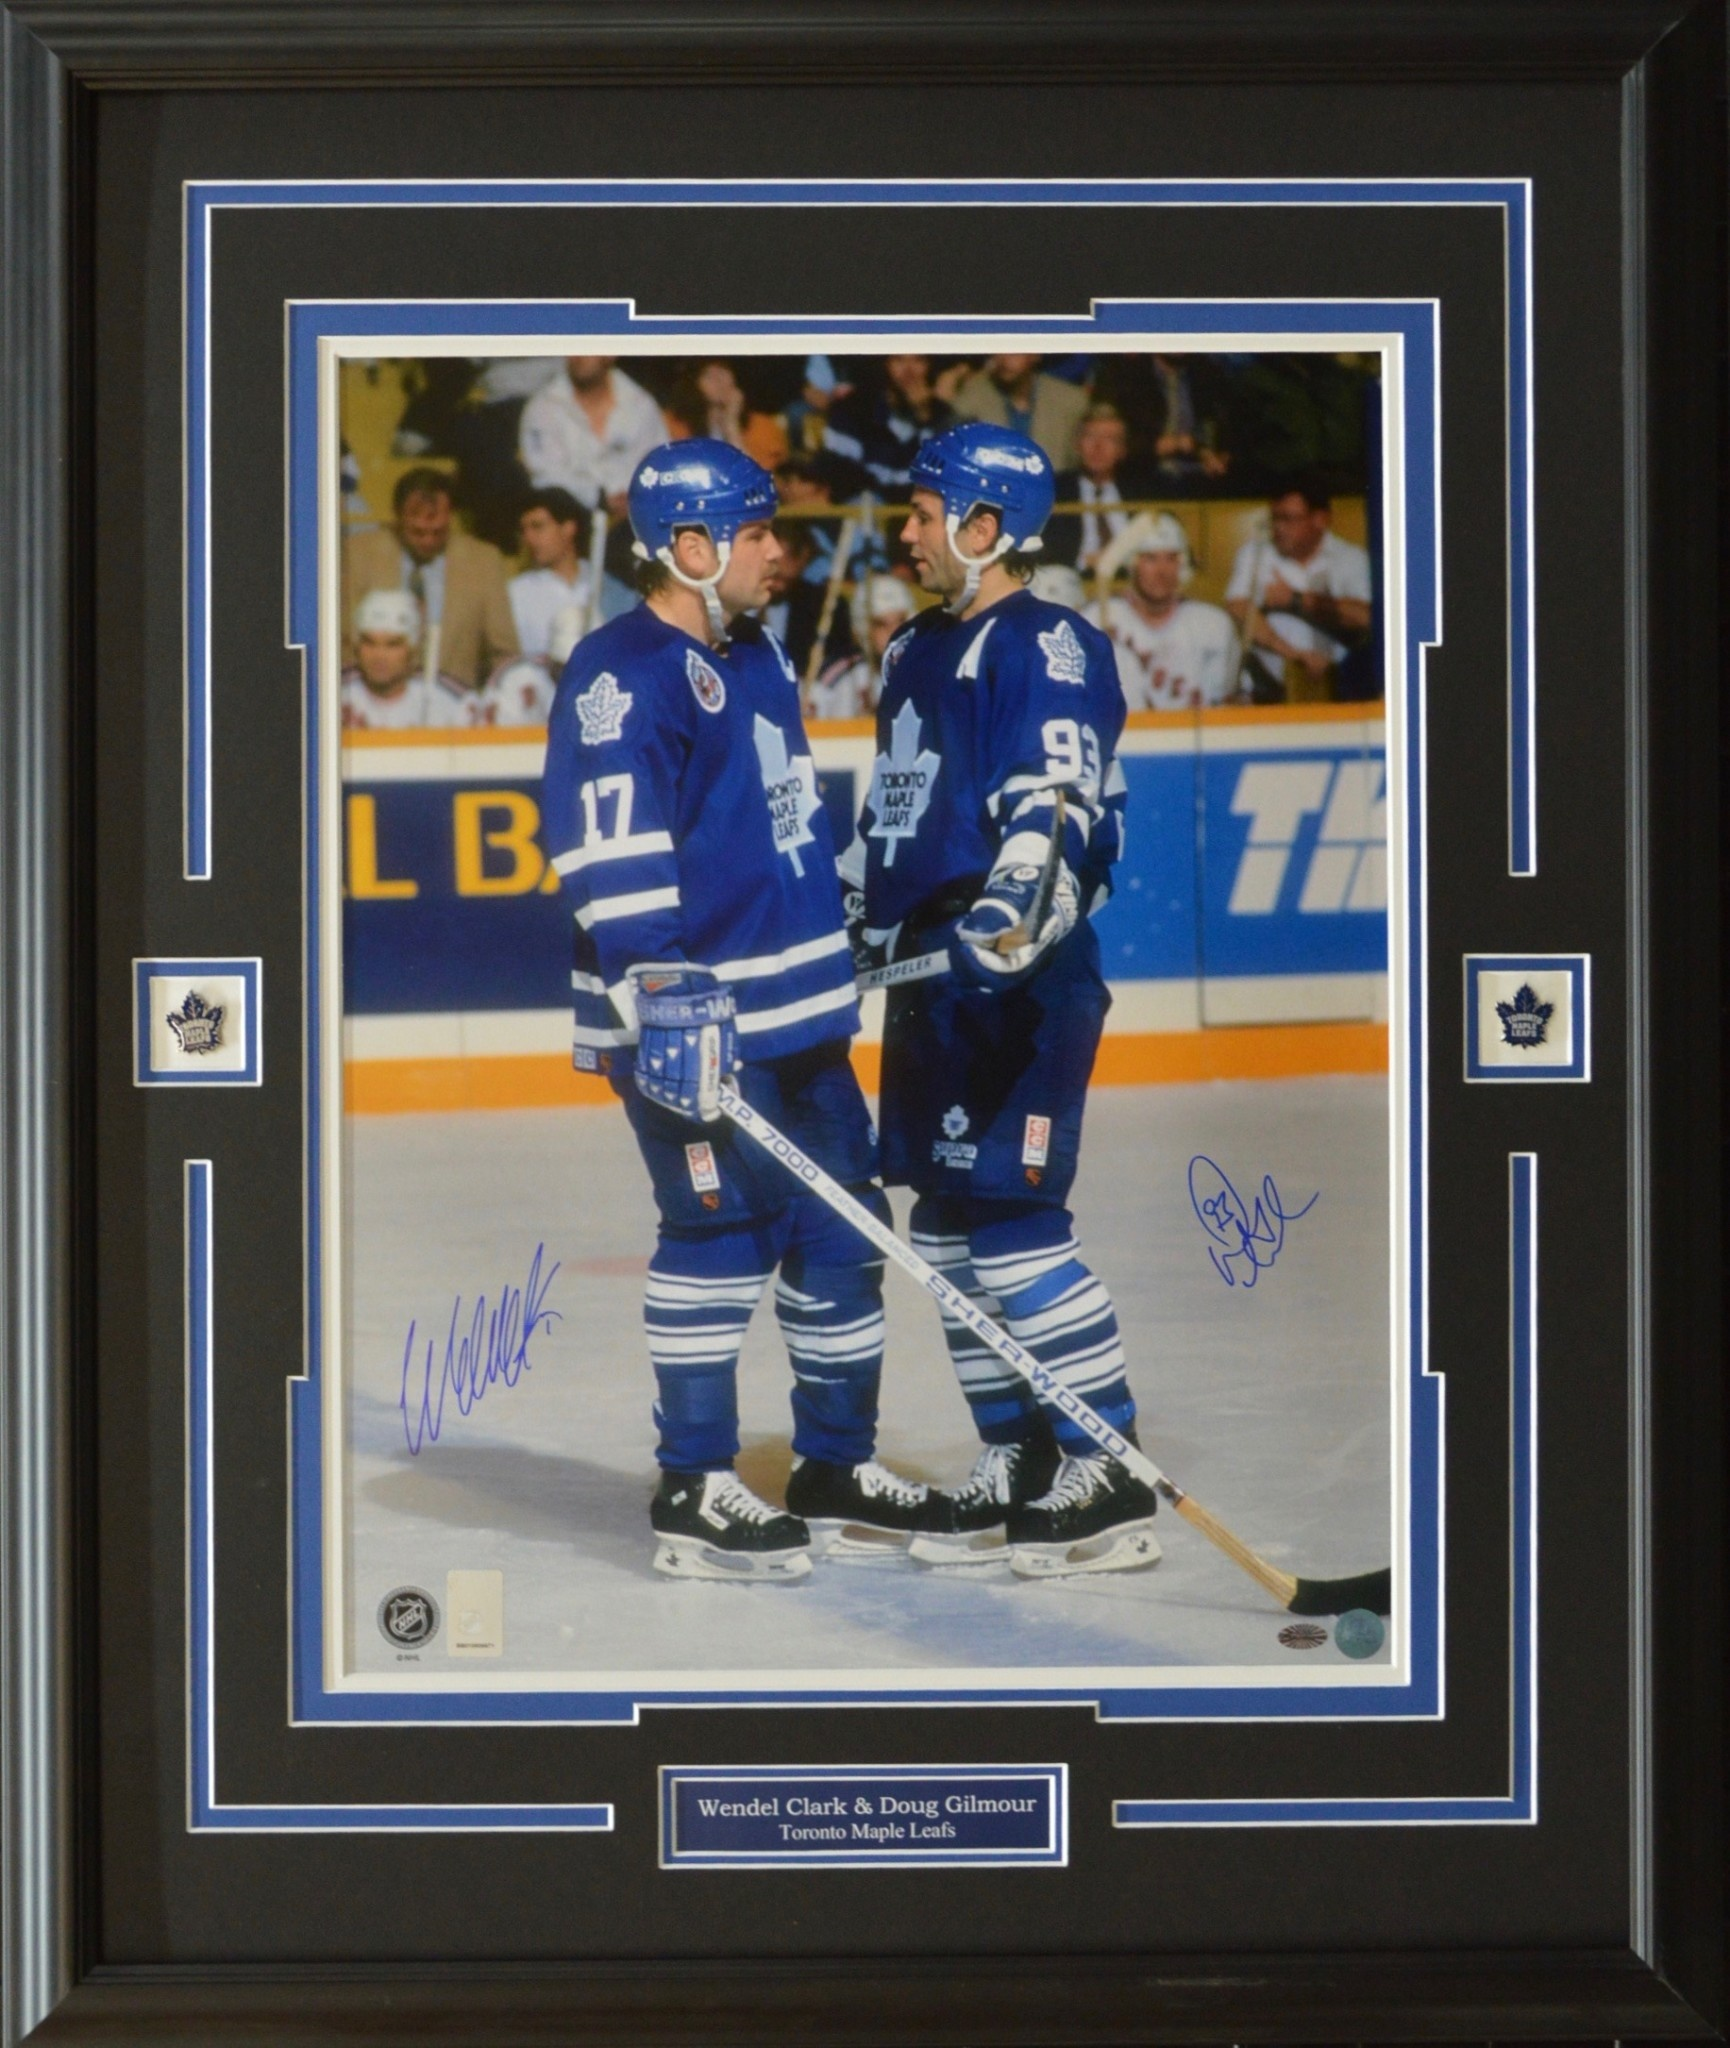 newest collection b1612 fee39 WENDEL CLARK AND DOUG GILMOUR AUTOGRAPH 16X20 PHOTO 23X28 FRAME - TORONTO  MAPLE LEAFS